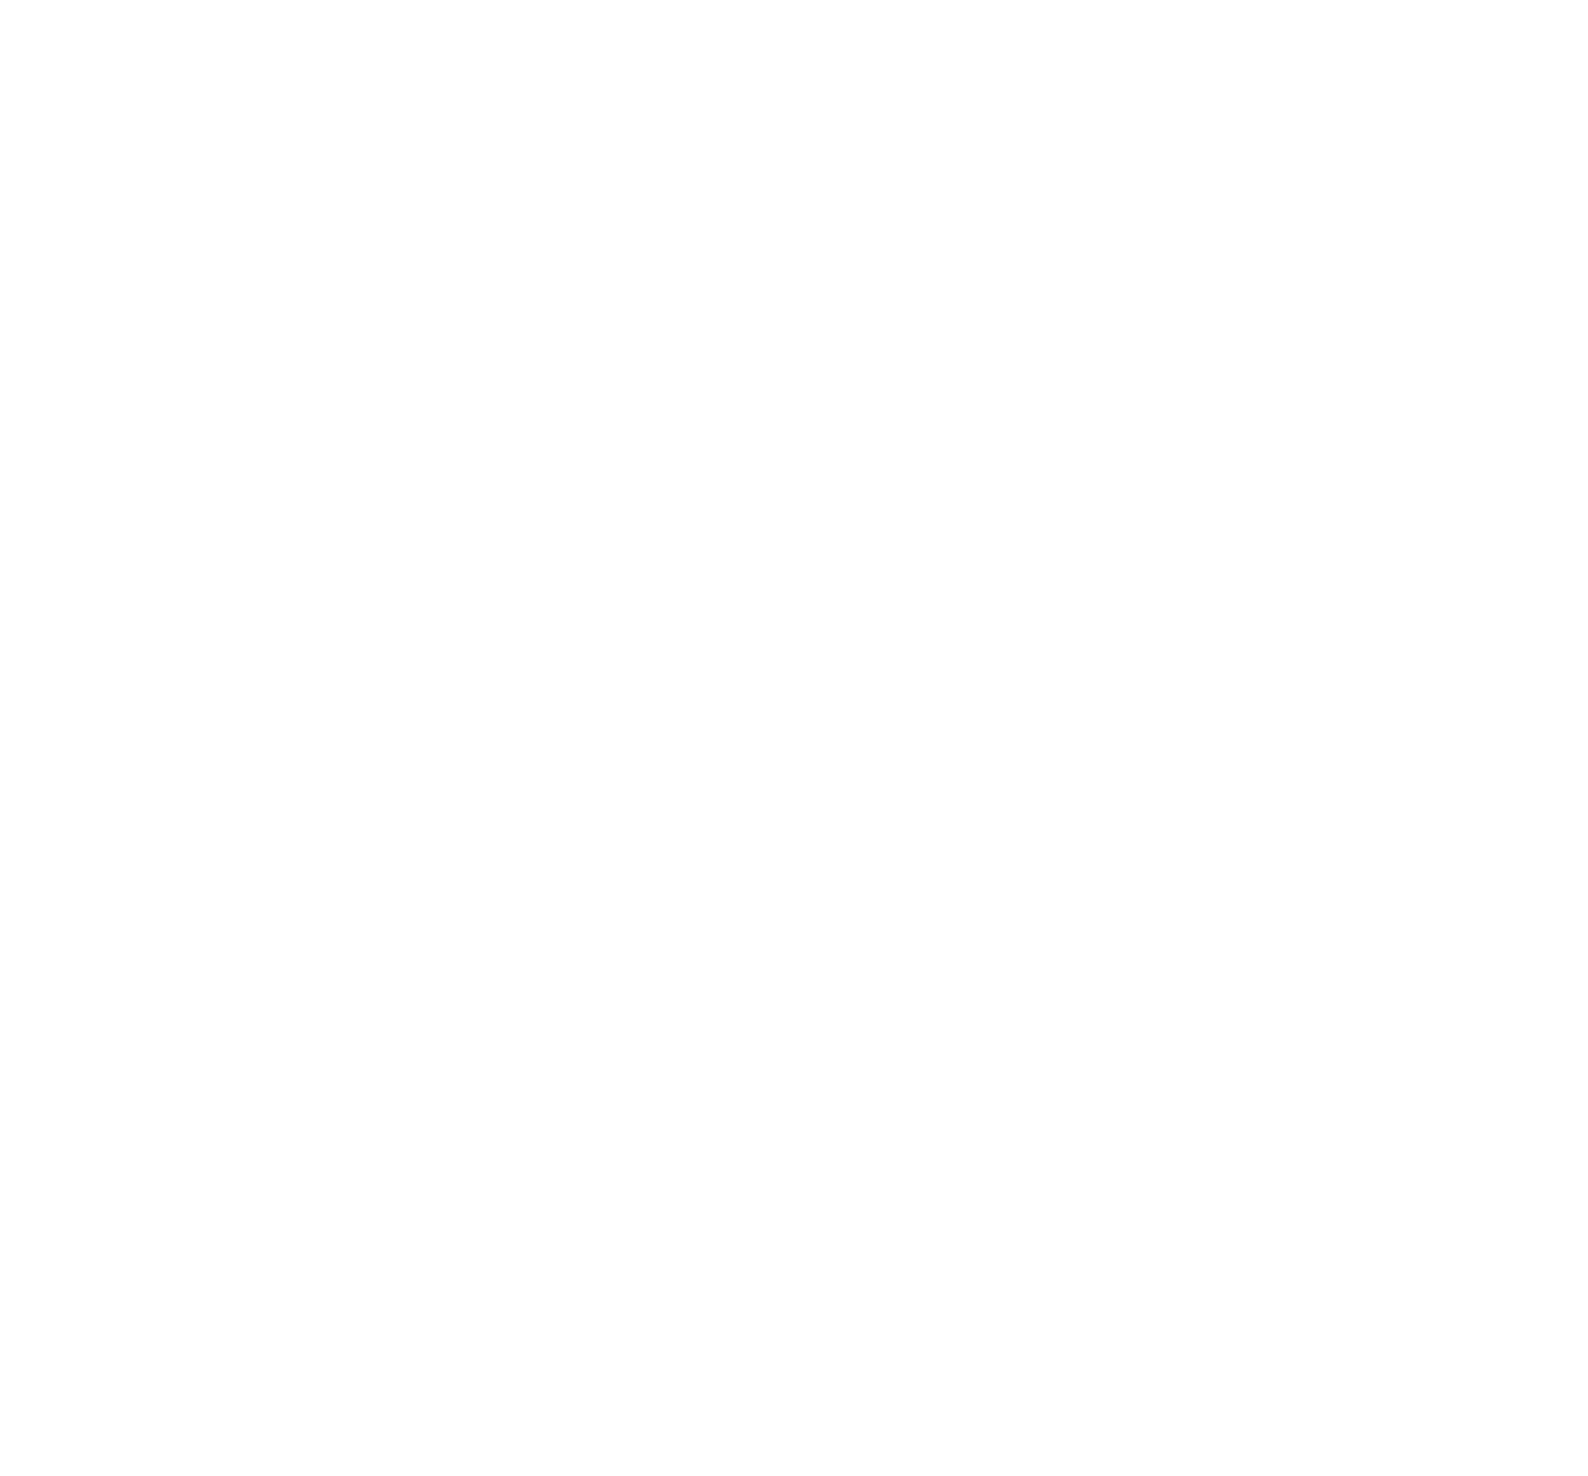 Mammoth_CASESTUDY_Newwebsite_2019_White-10.png